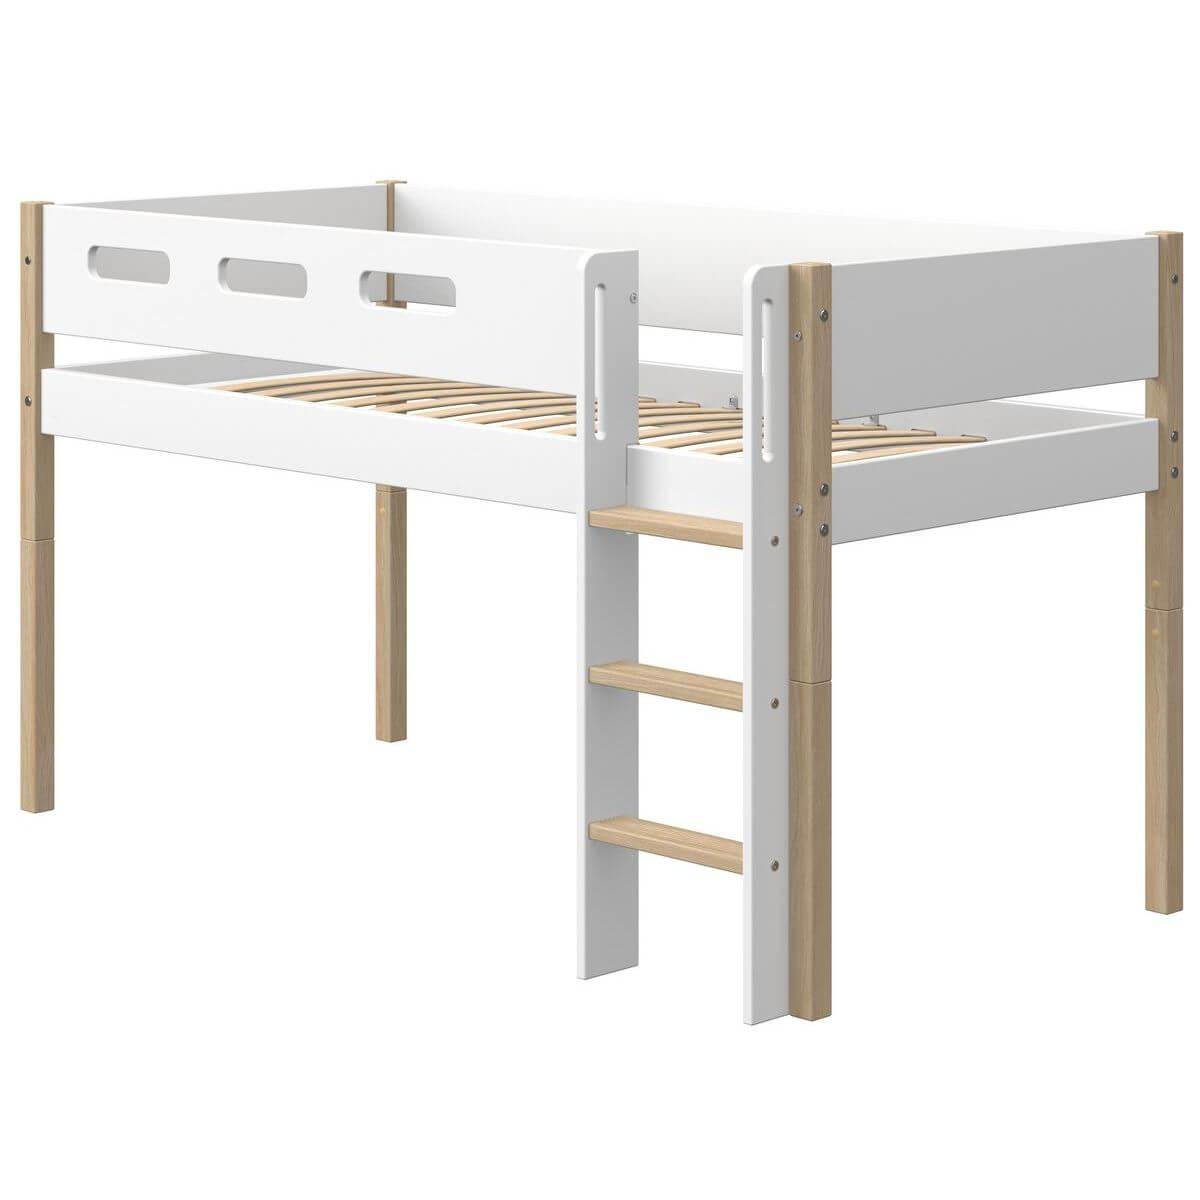 Cama media alta 90x190cm escalera recta NOR Flexa roble-blanco